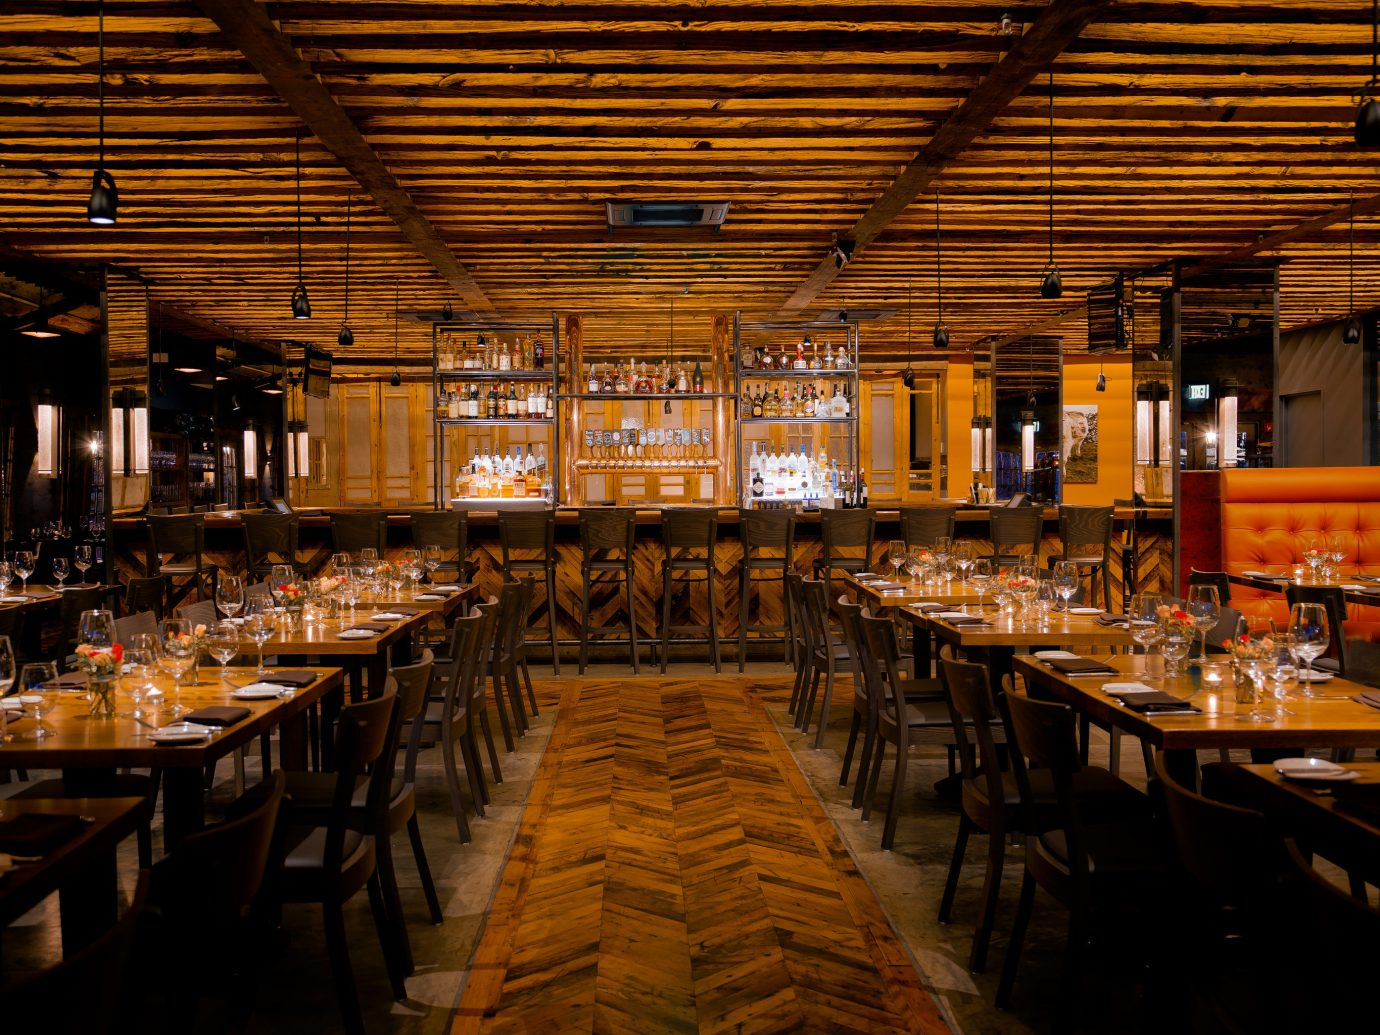 Food + Drink table indoor ceiling meal restaurant function hall Dining Bar long empty several dining room